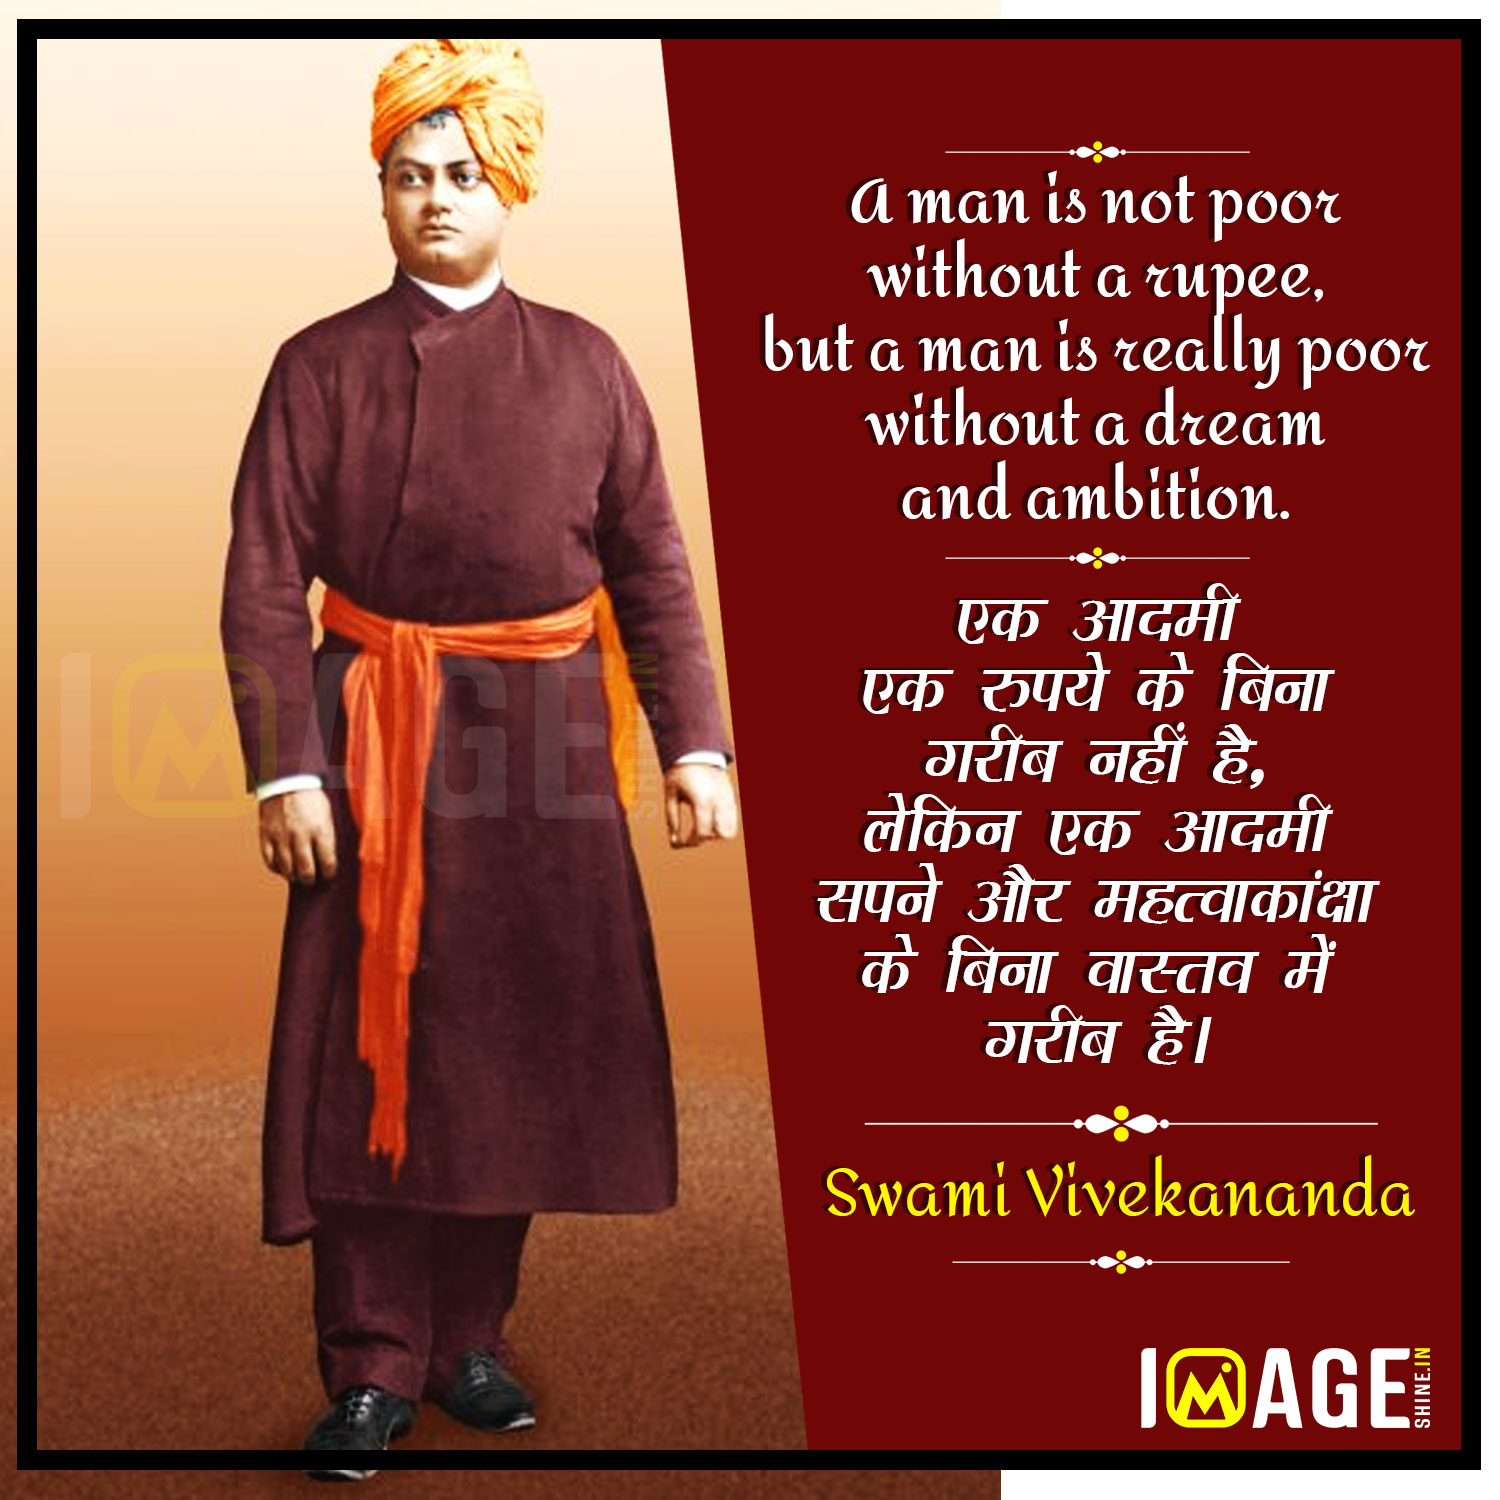 swami vivekananda quote images